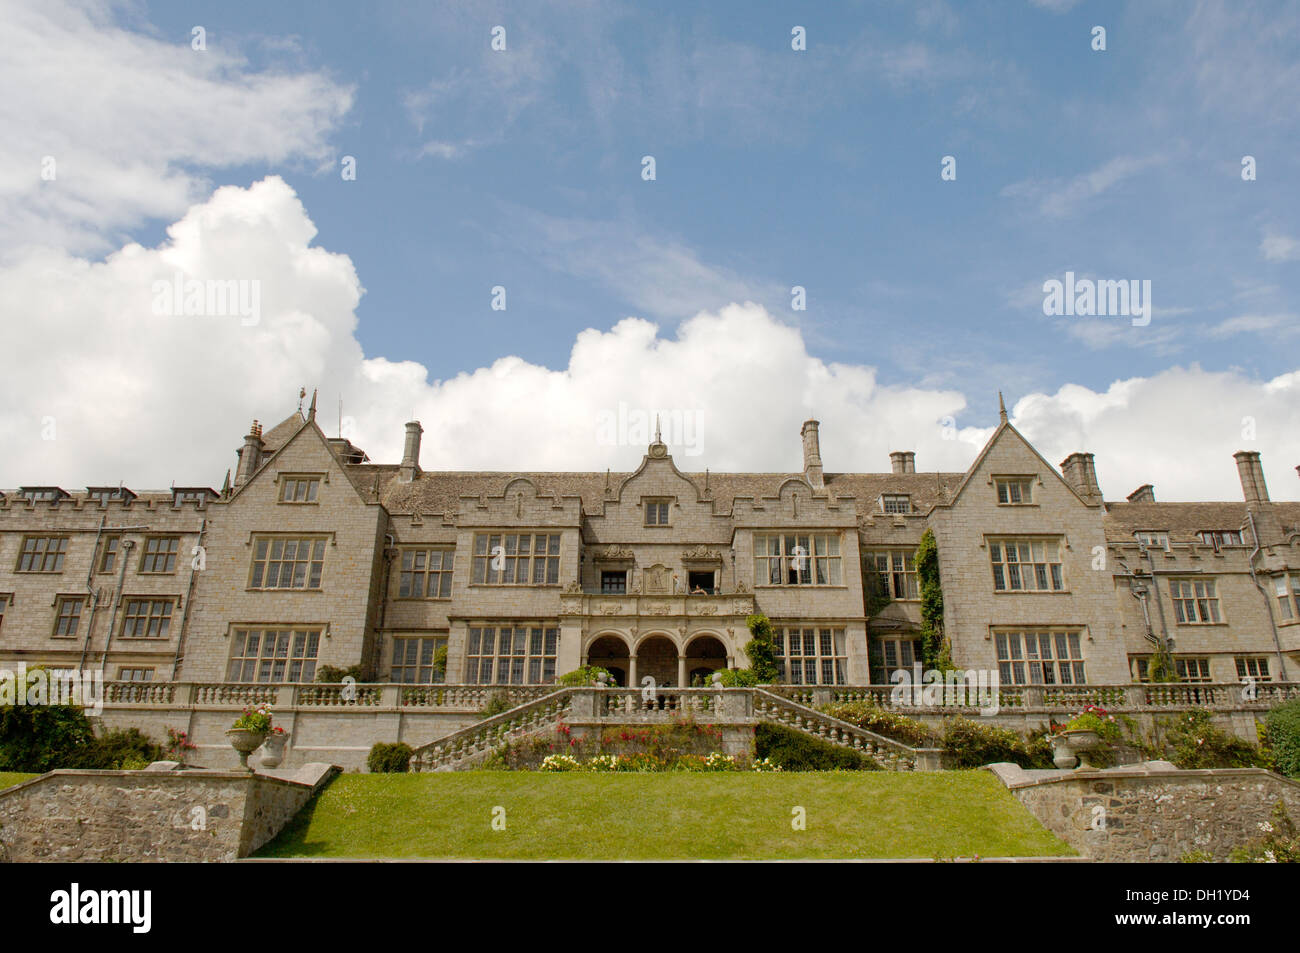 Bovey Castle wedding venue devon country hotel - Stock Image